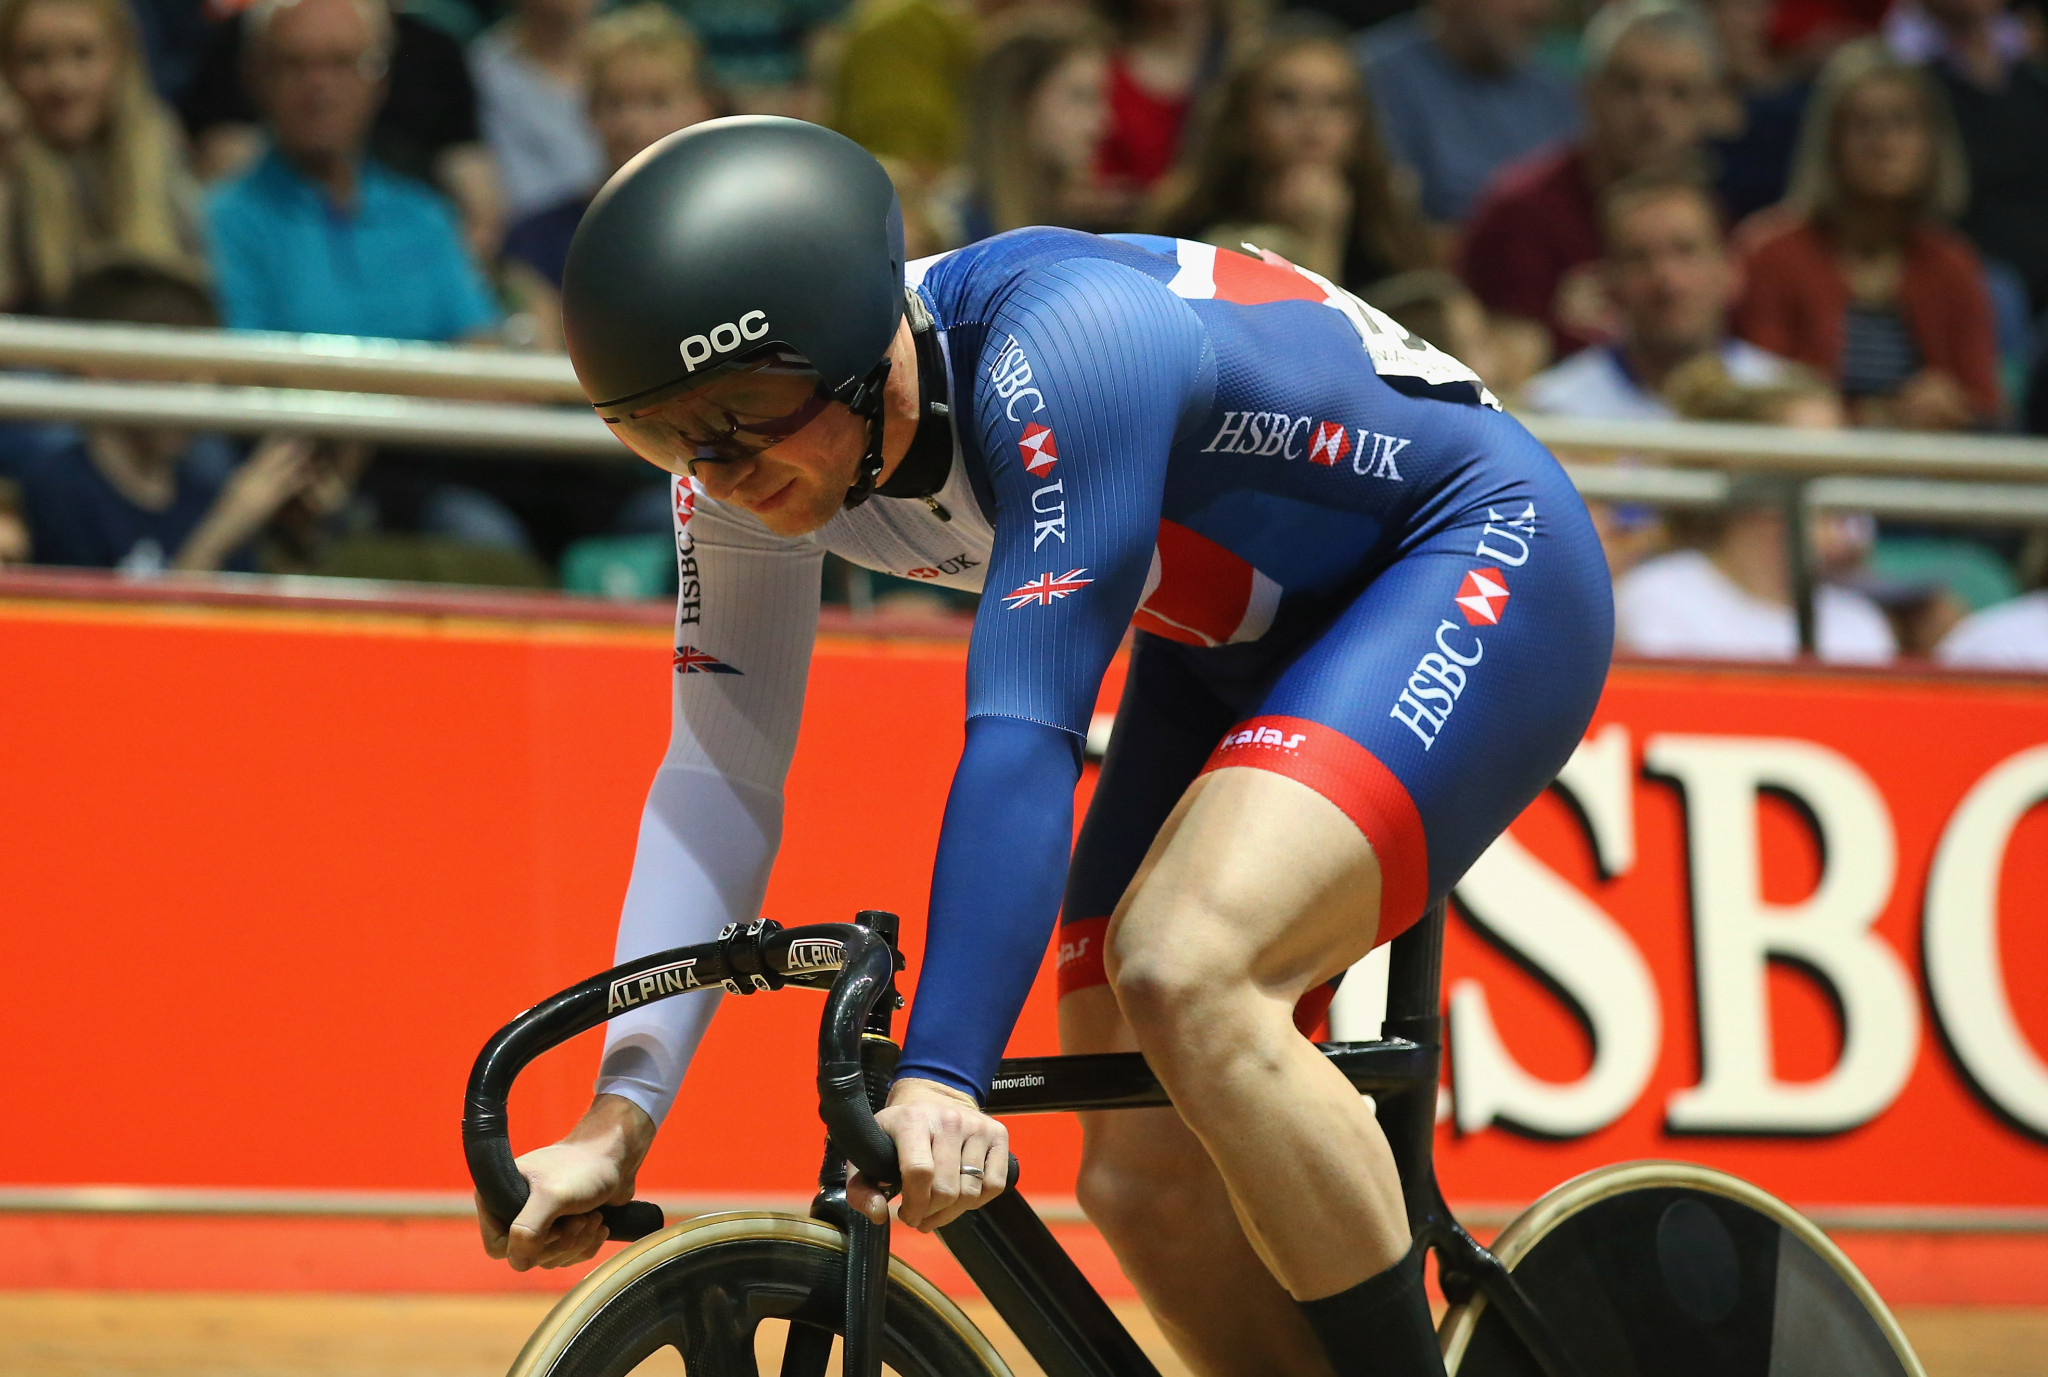 Jason Kenny has been included in Britain's track cycling team for the European Championships in Glasgow ©Getty Images